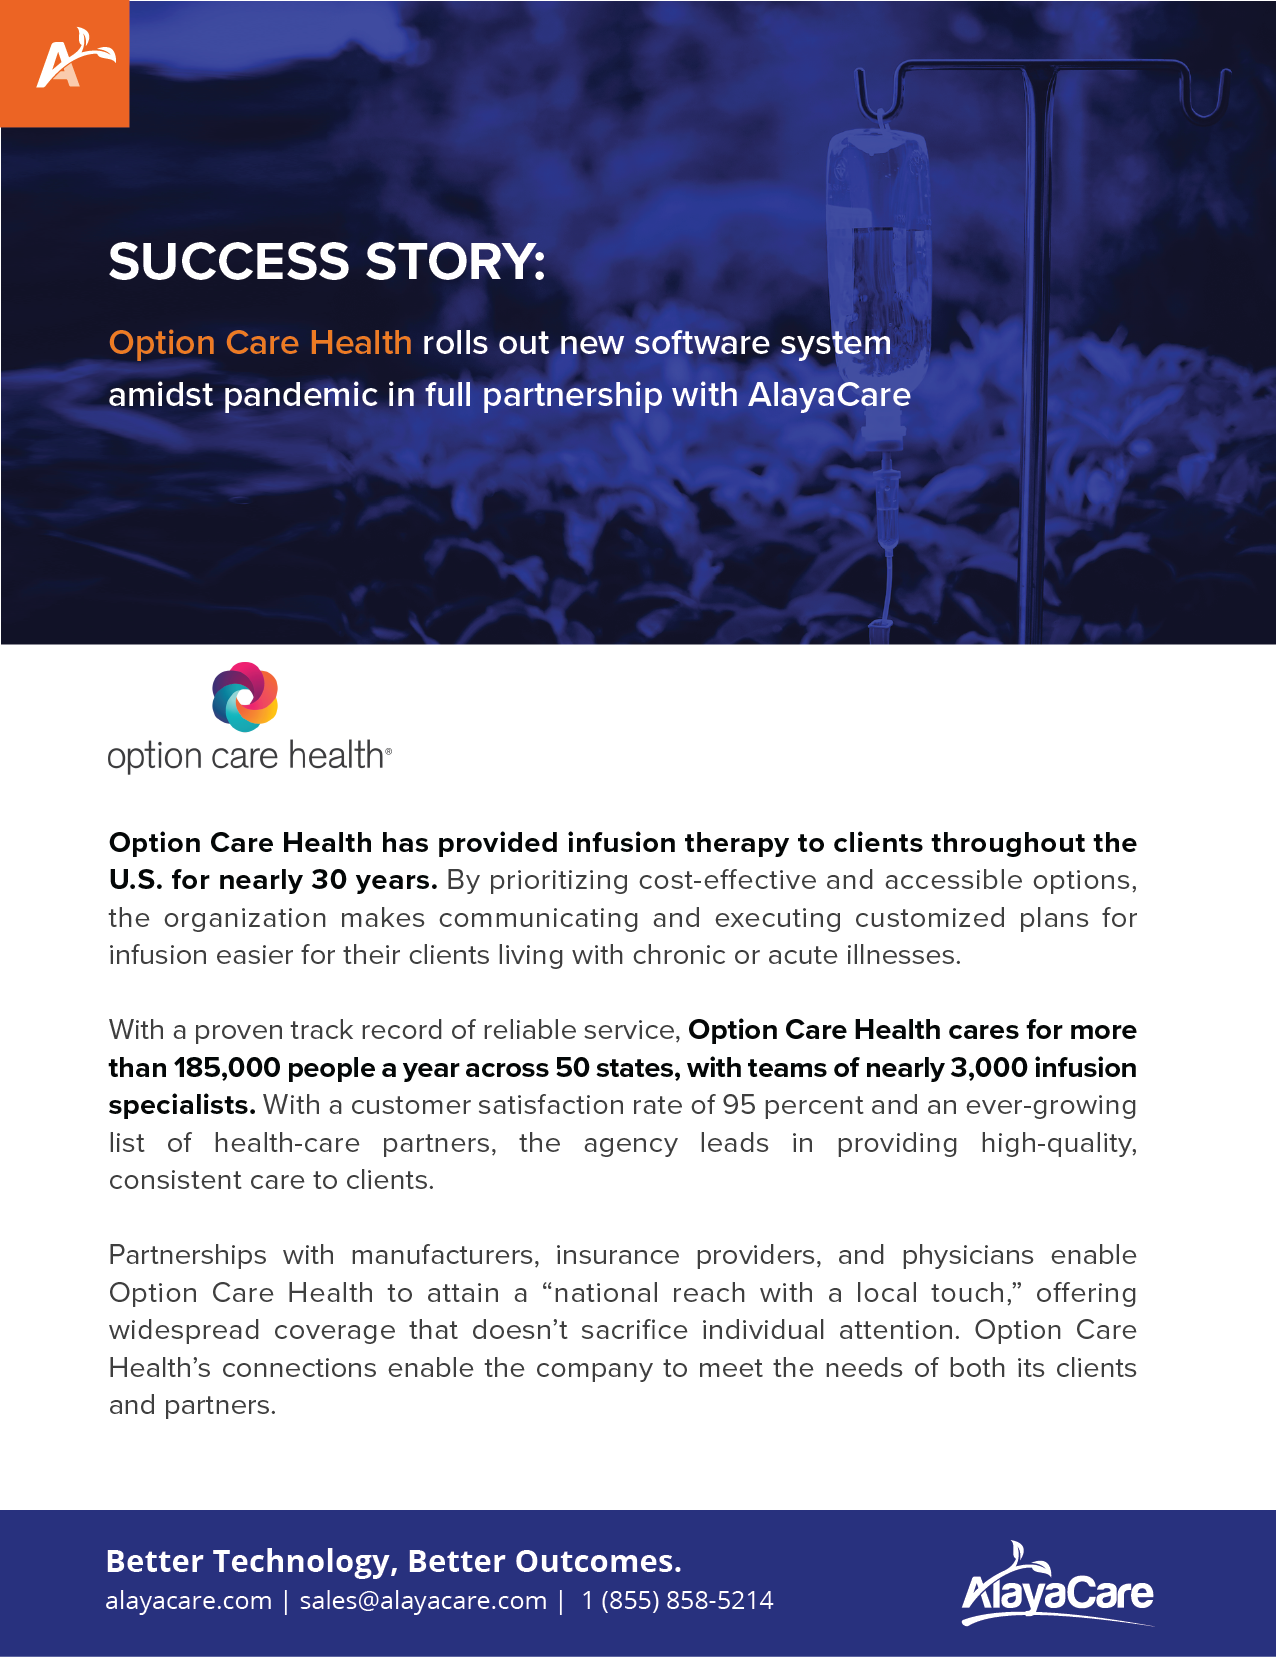 Option Care Health Case Study